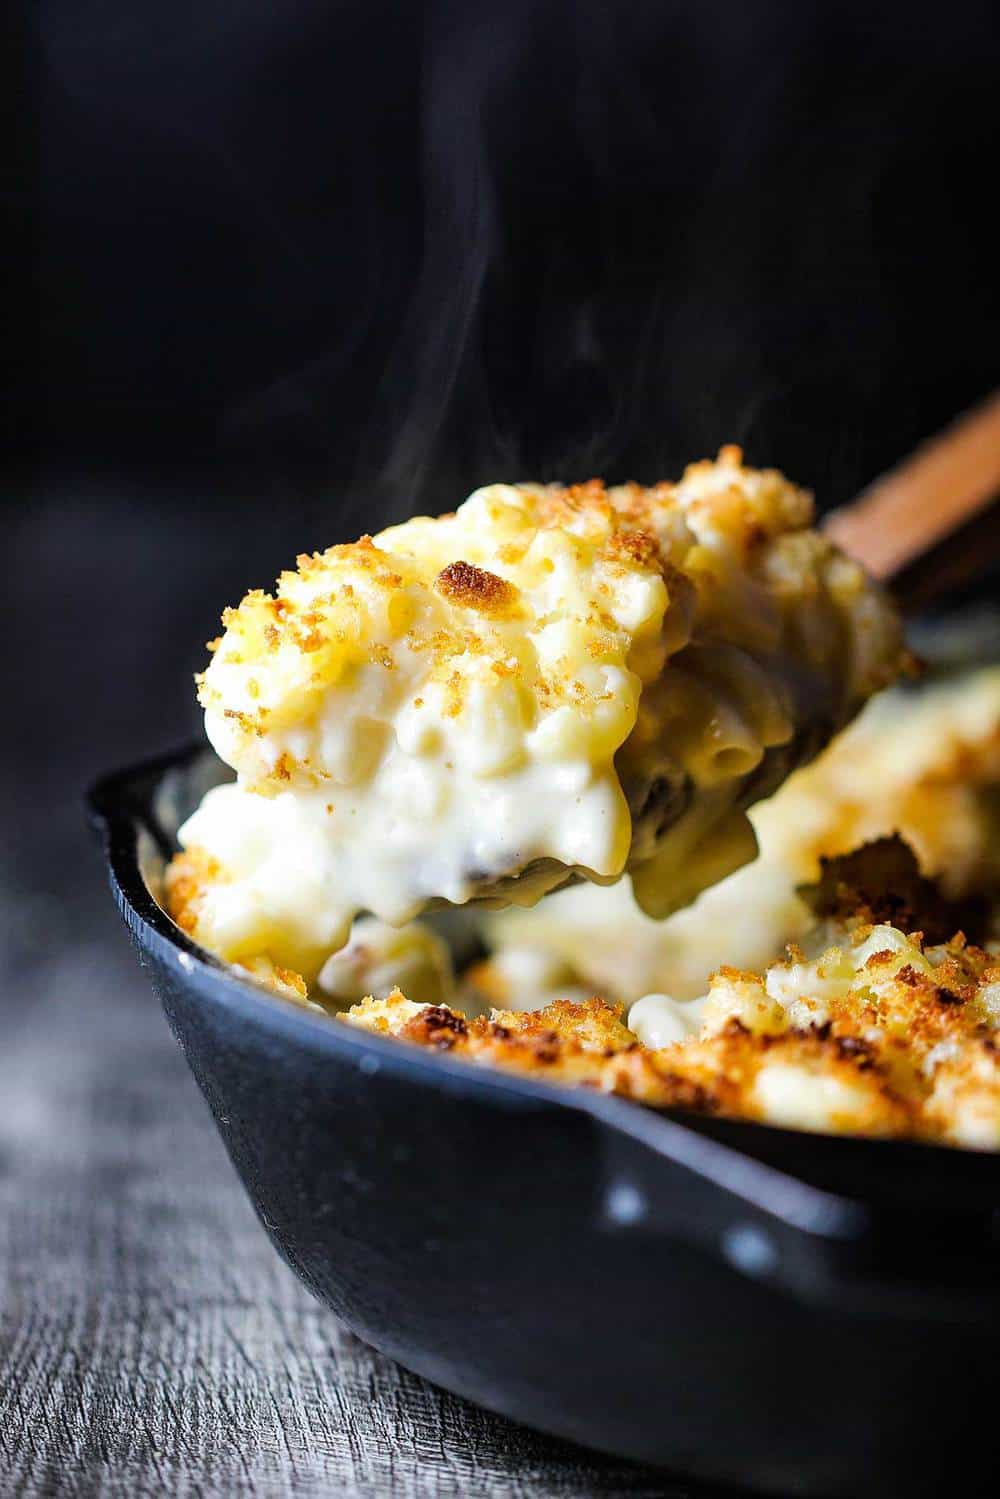 A wooden spoon lifting a helping of ultimate macaroni and cheese from a black cast iron skillet